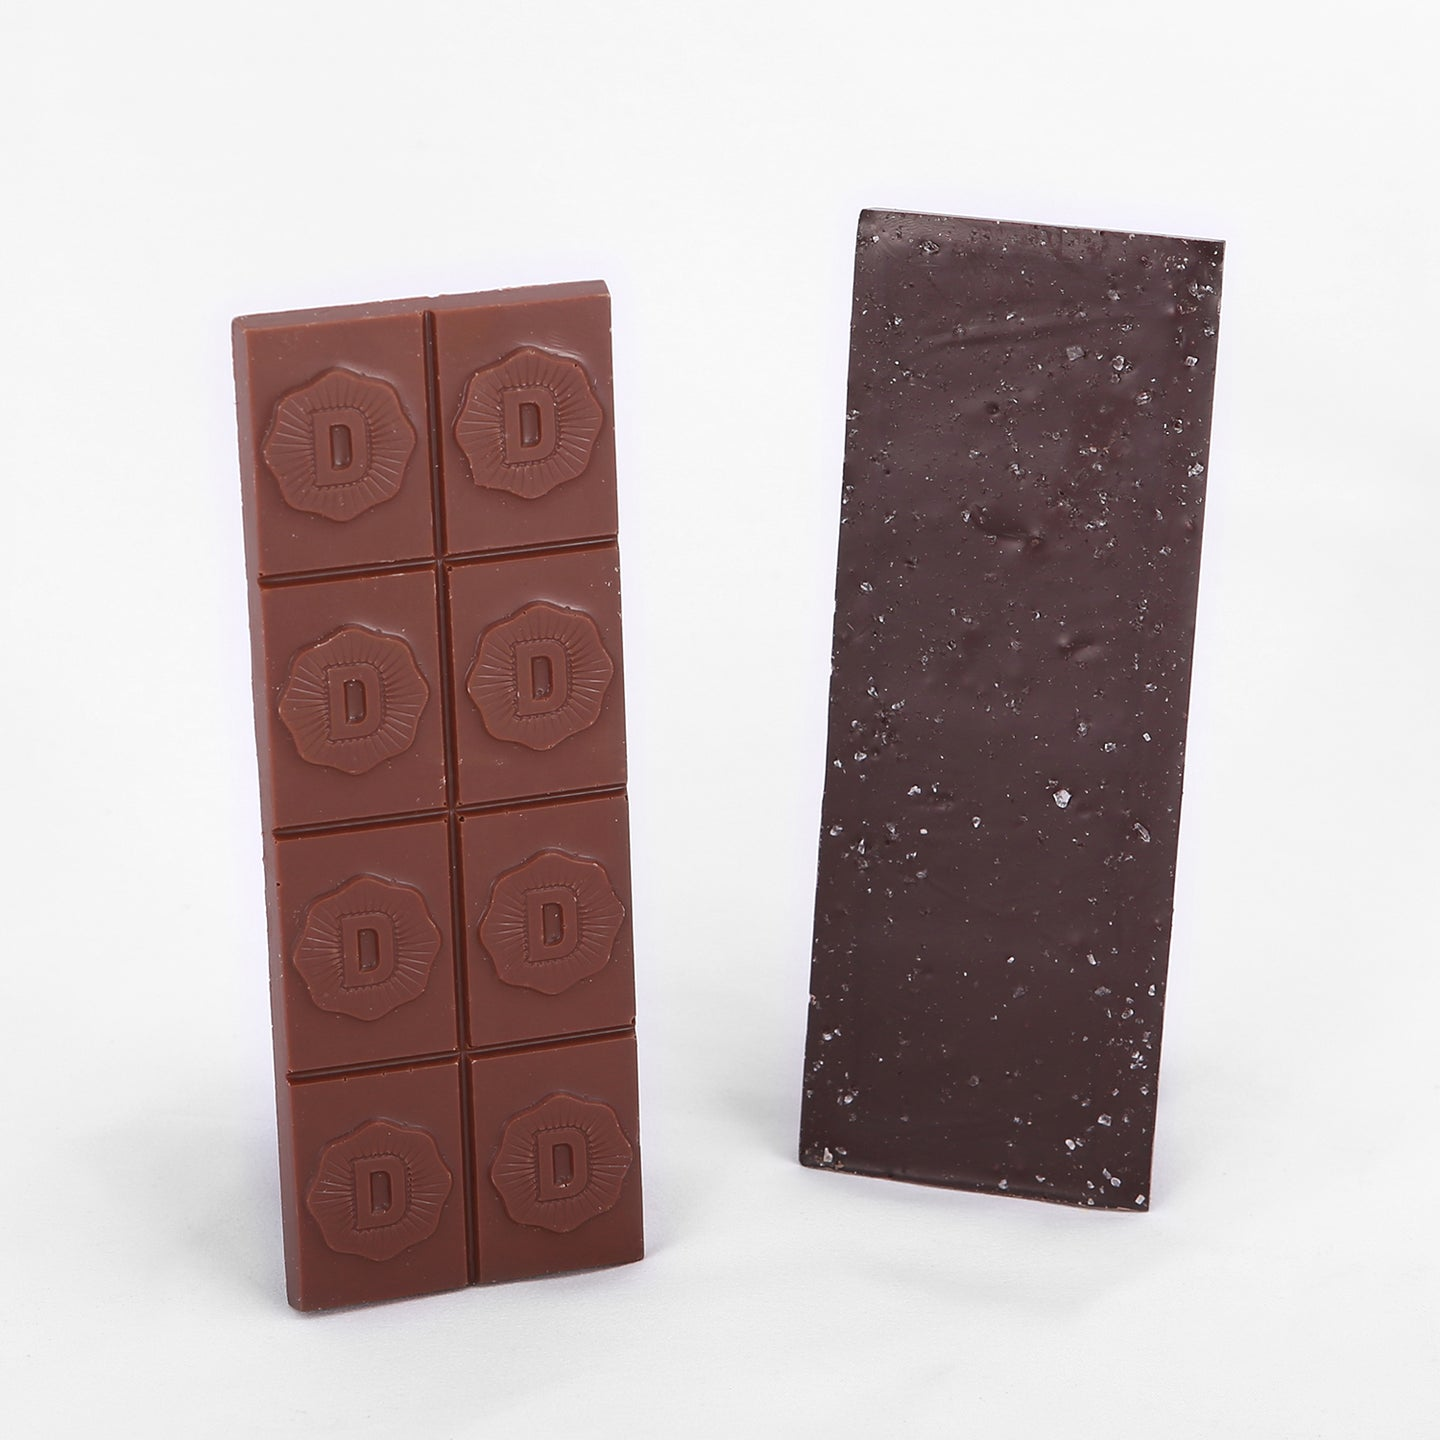 Two small Deiter's chocolate bars